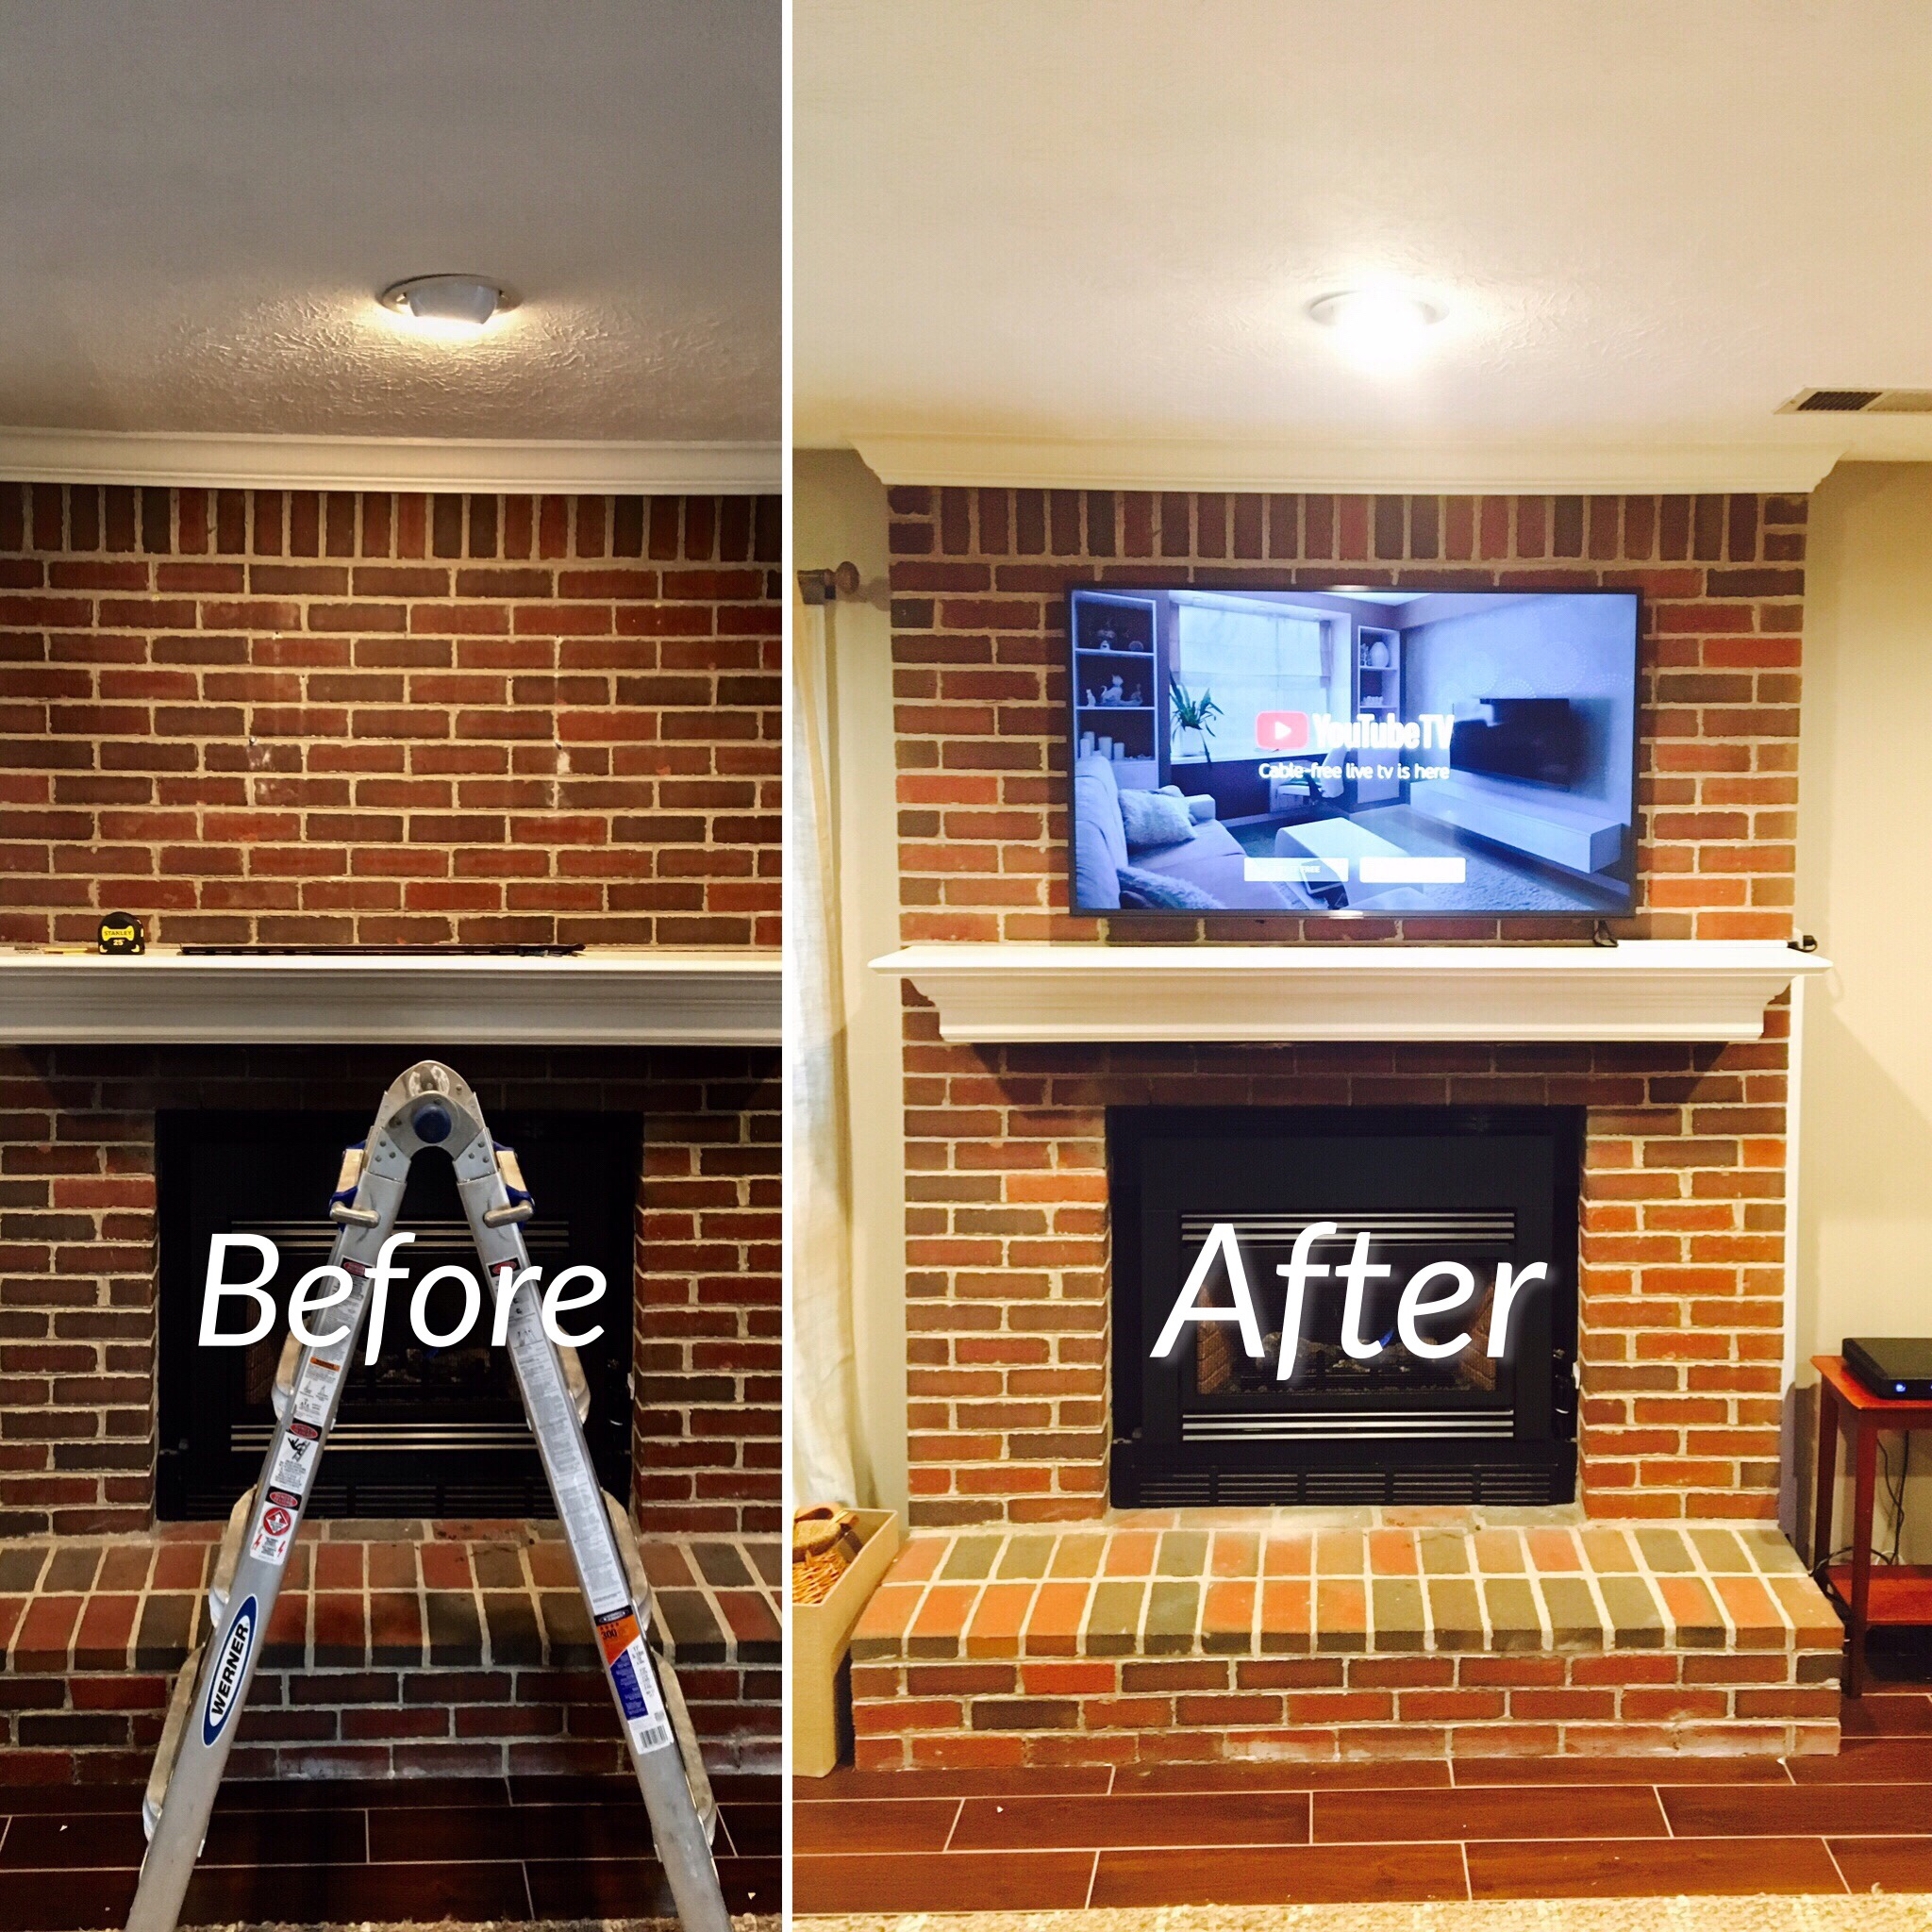 Mounting Tv On Brick Fireplace Annqe, Can You Mount Tv To Brick Fireplace